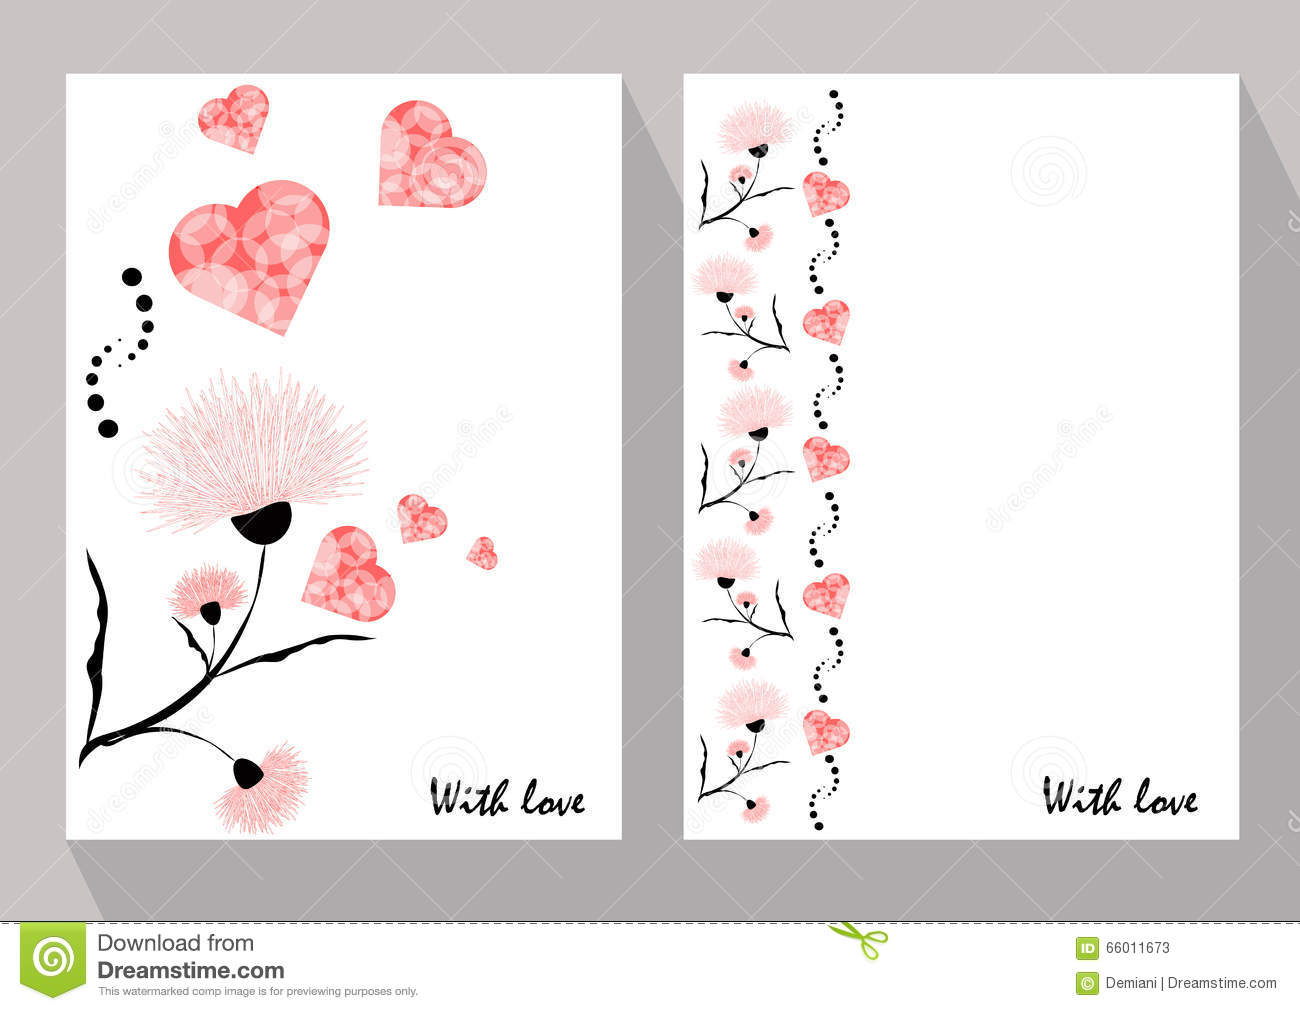 Greeting cards with abstract pink flowers in ethnic style for de greeting cards with abstract pink flowers in ethnic style for de kristyandbryce Image collections